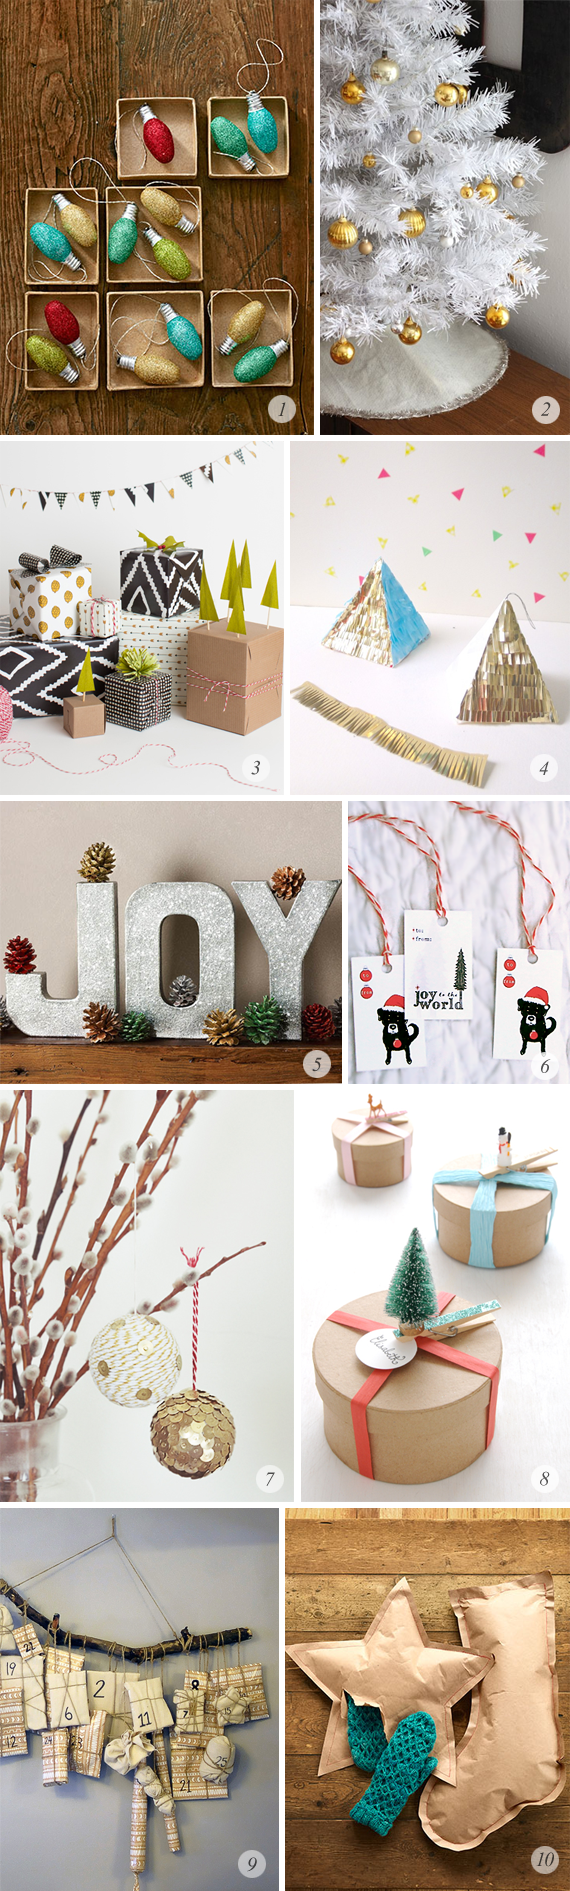 10 Great Holiday DIY Projects // Bubby and Bean